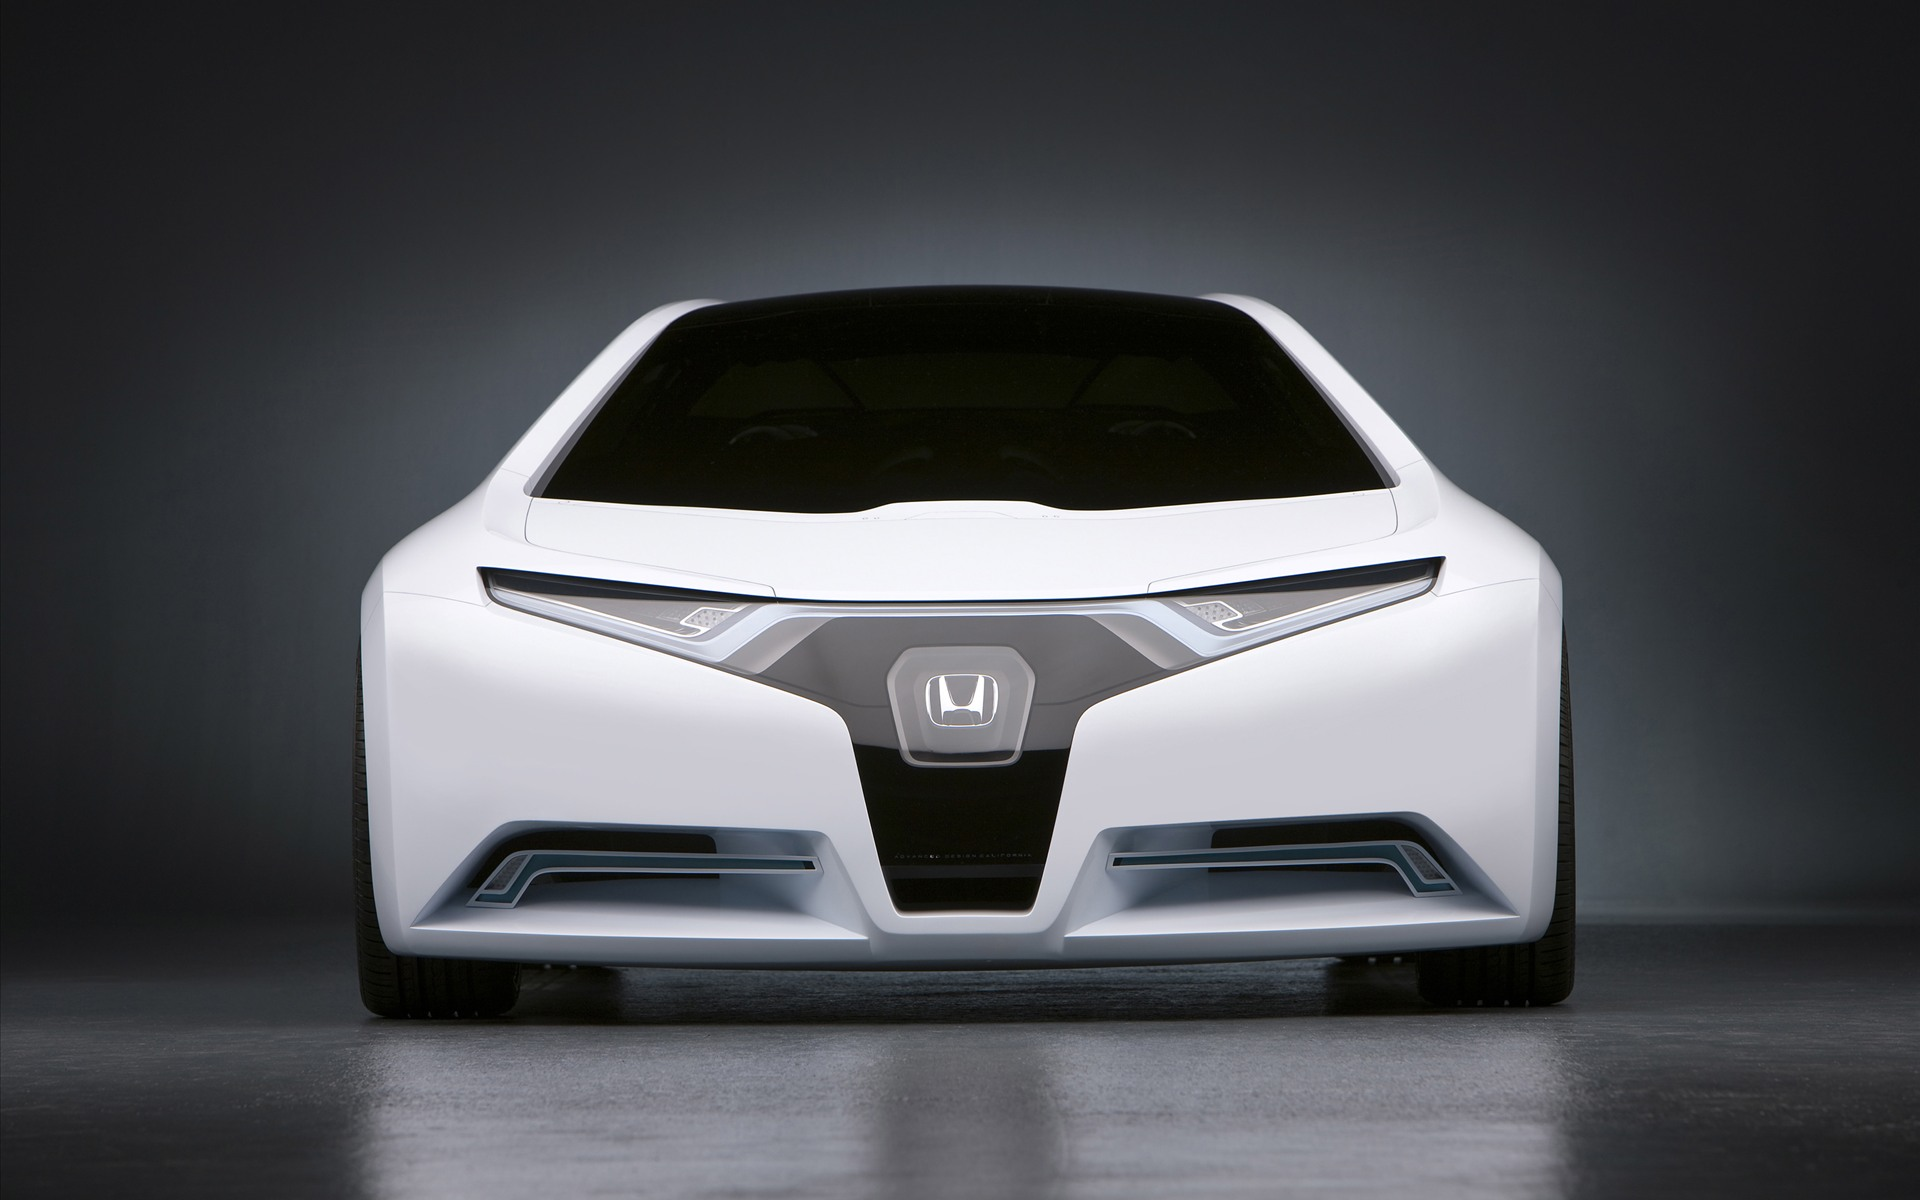 Can Hydrogen Cars Run On The Road In The Future